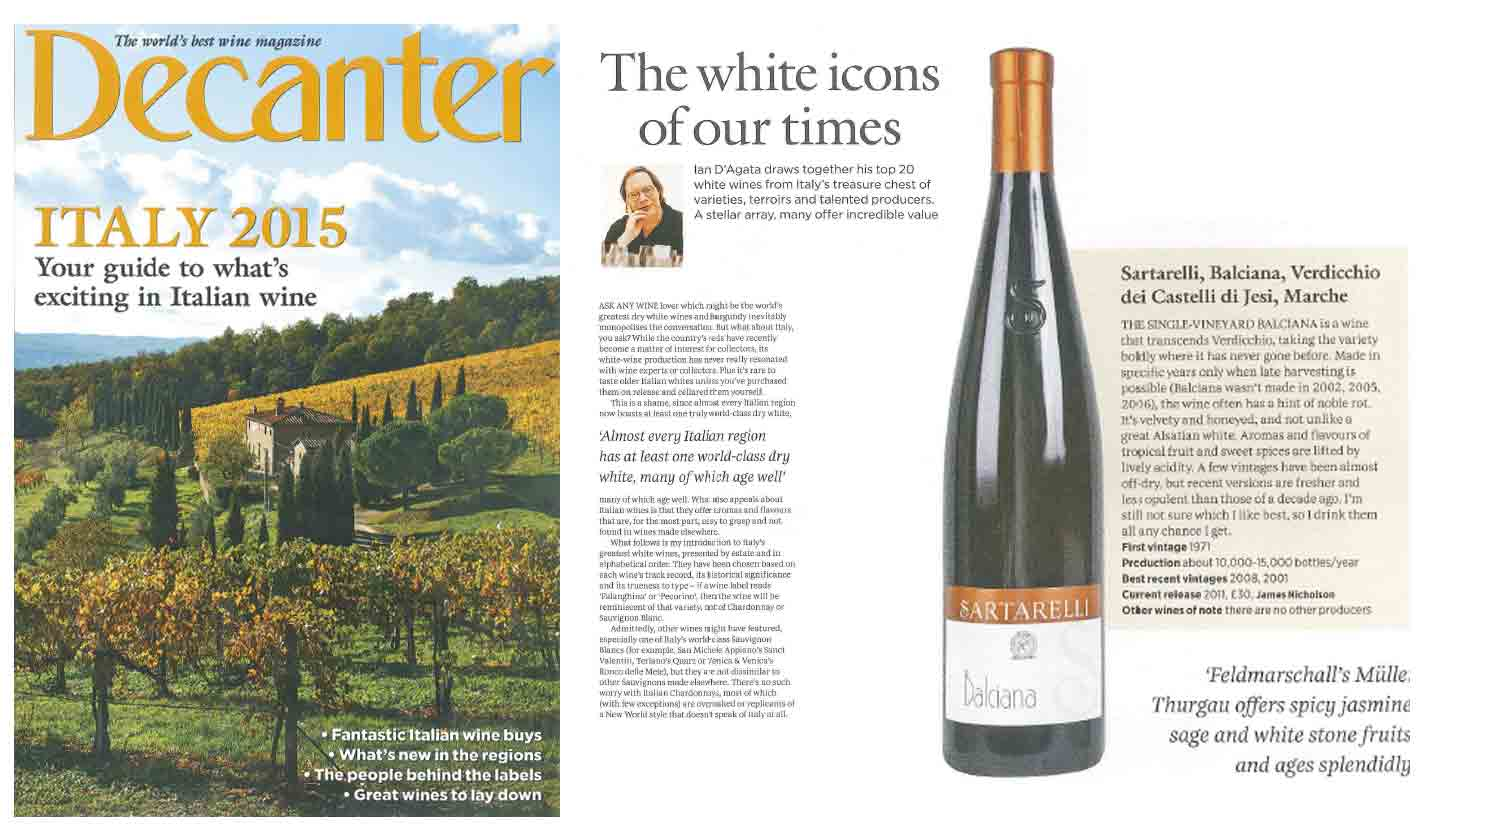 Decanter - The white icons of our times